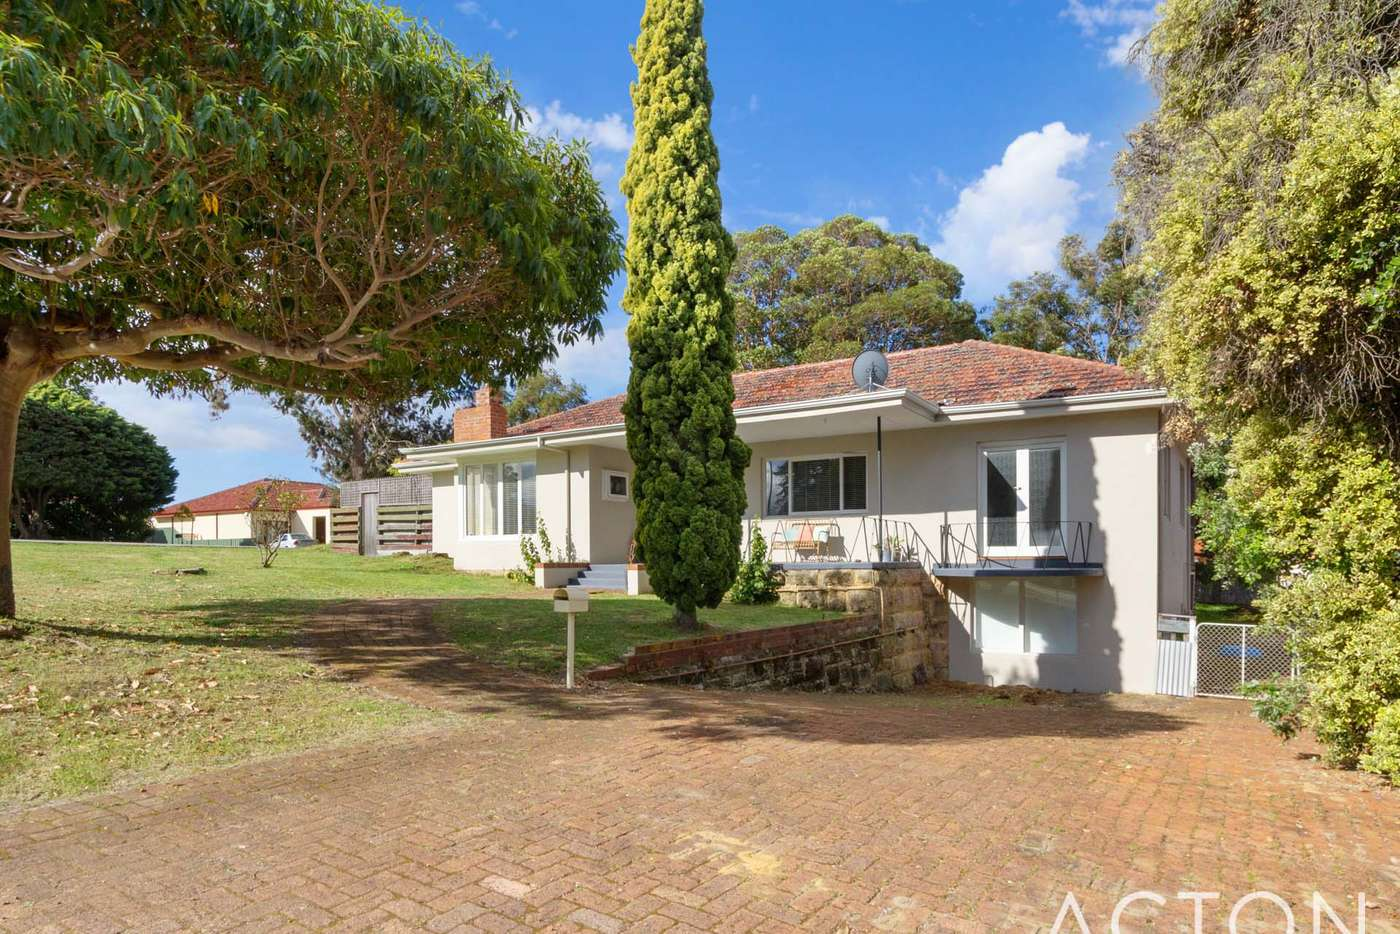 Main view of Homely house listing, 28 Marradong St, Coolbinia WA 6050